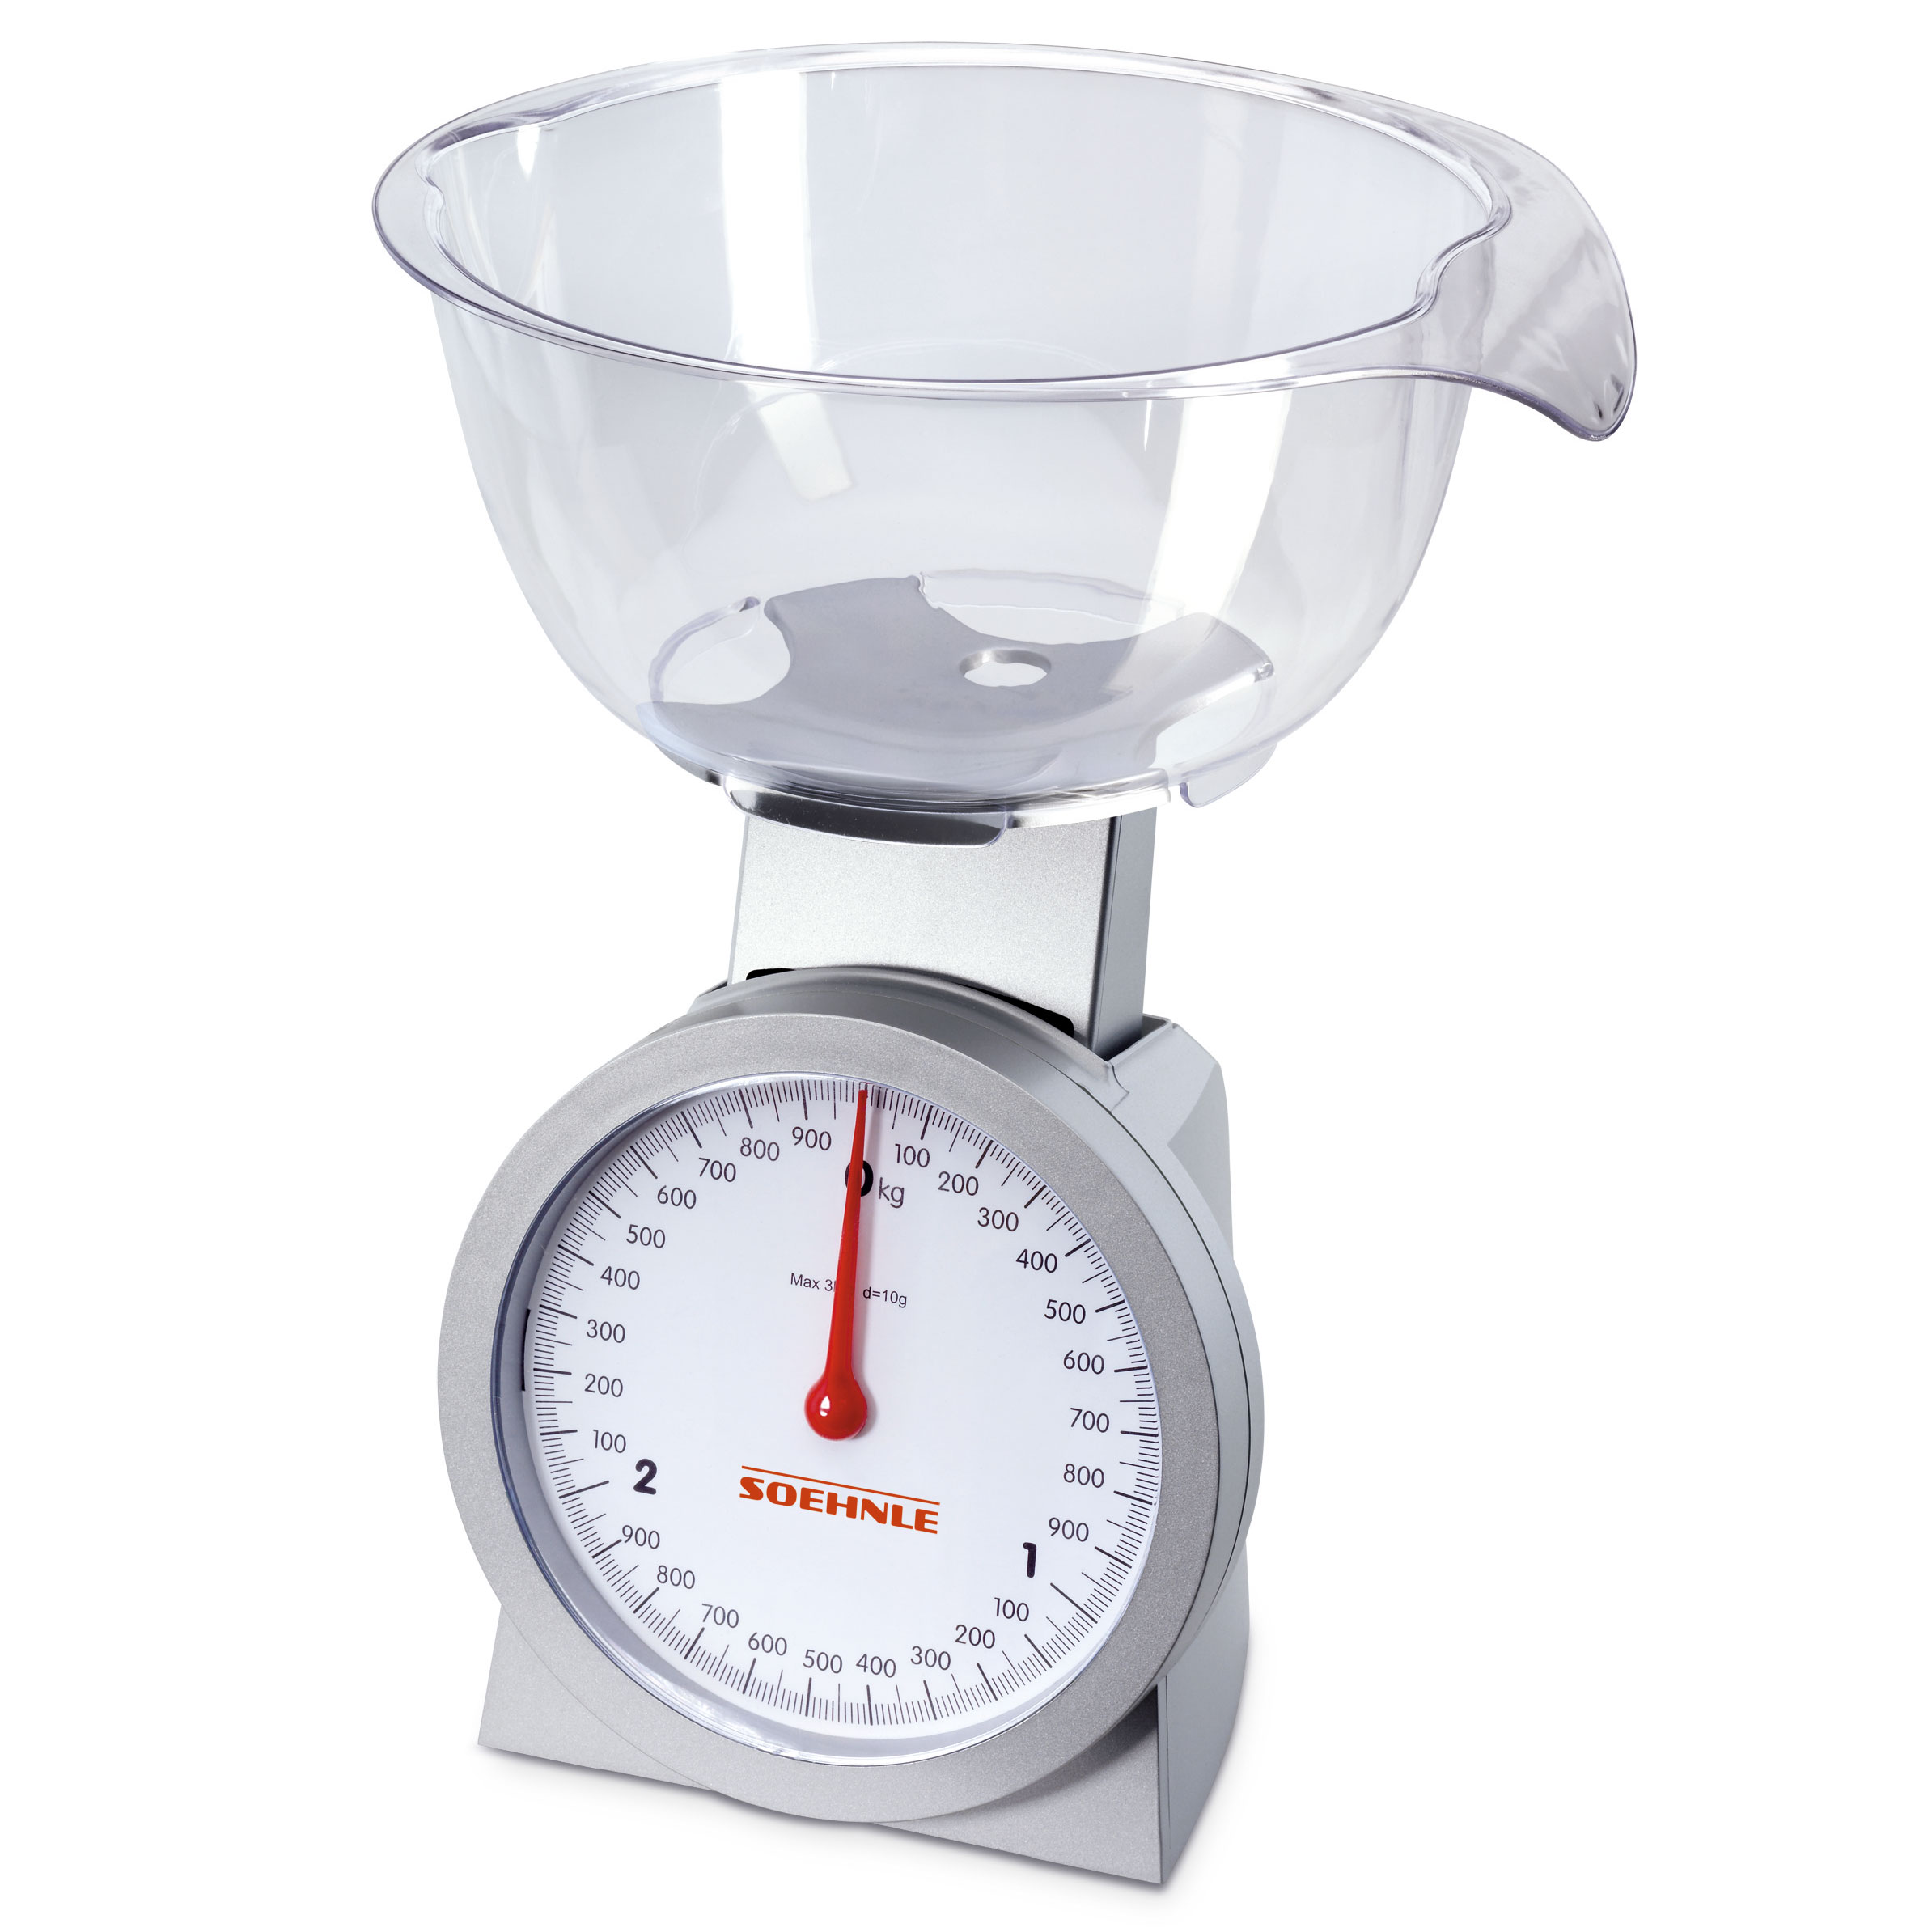 Real Küchenwaage Soehnle Kitchen Scale Actuell Analog Scale Scale With Mixing Bowl 3kg 65041 At About Tea De Shop